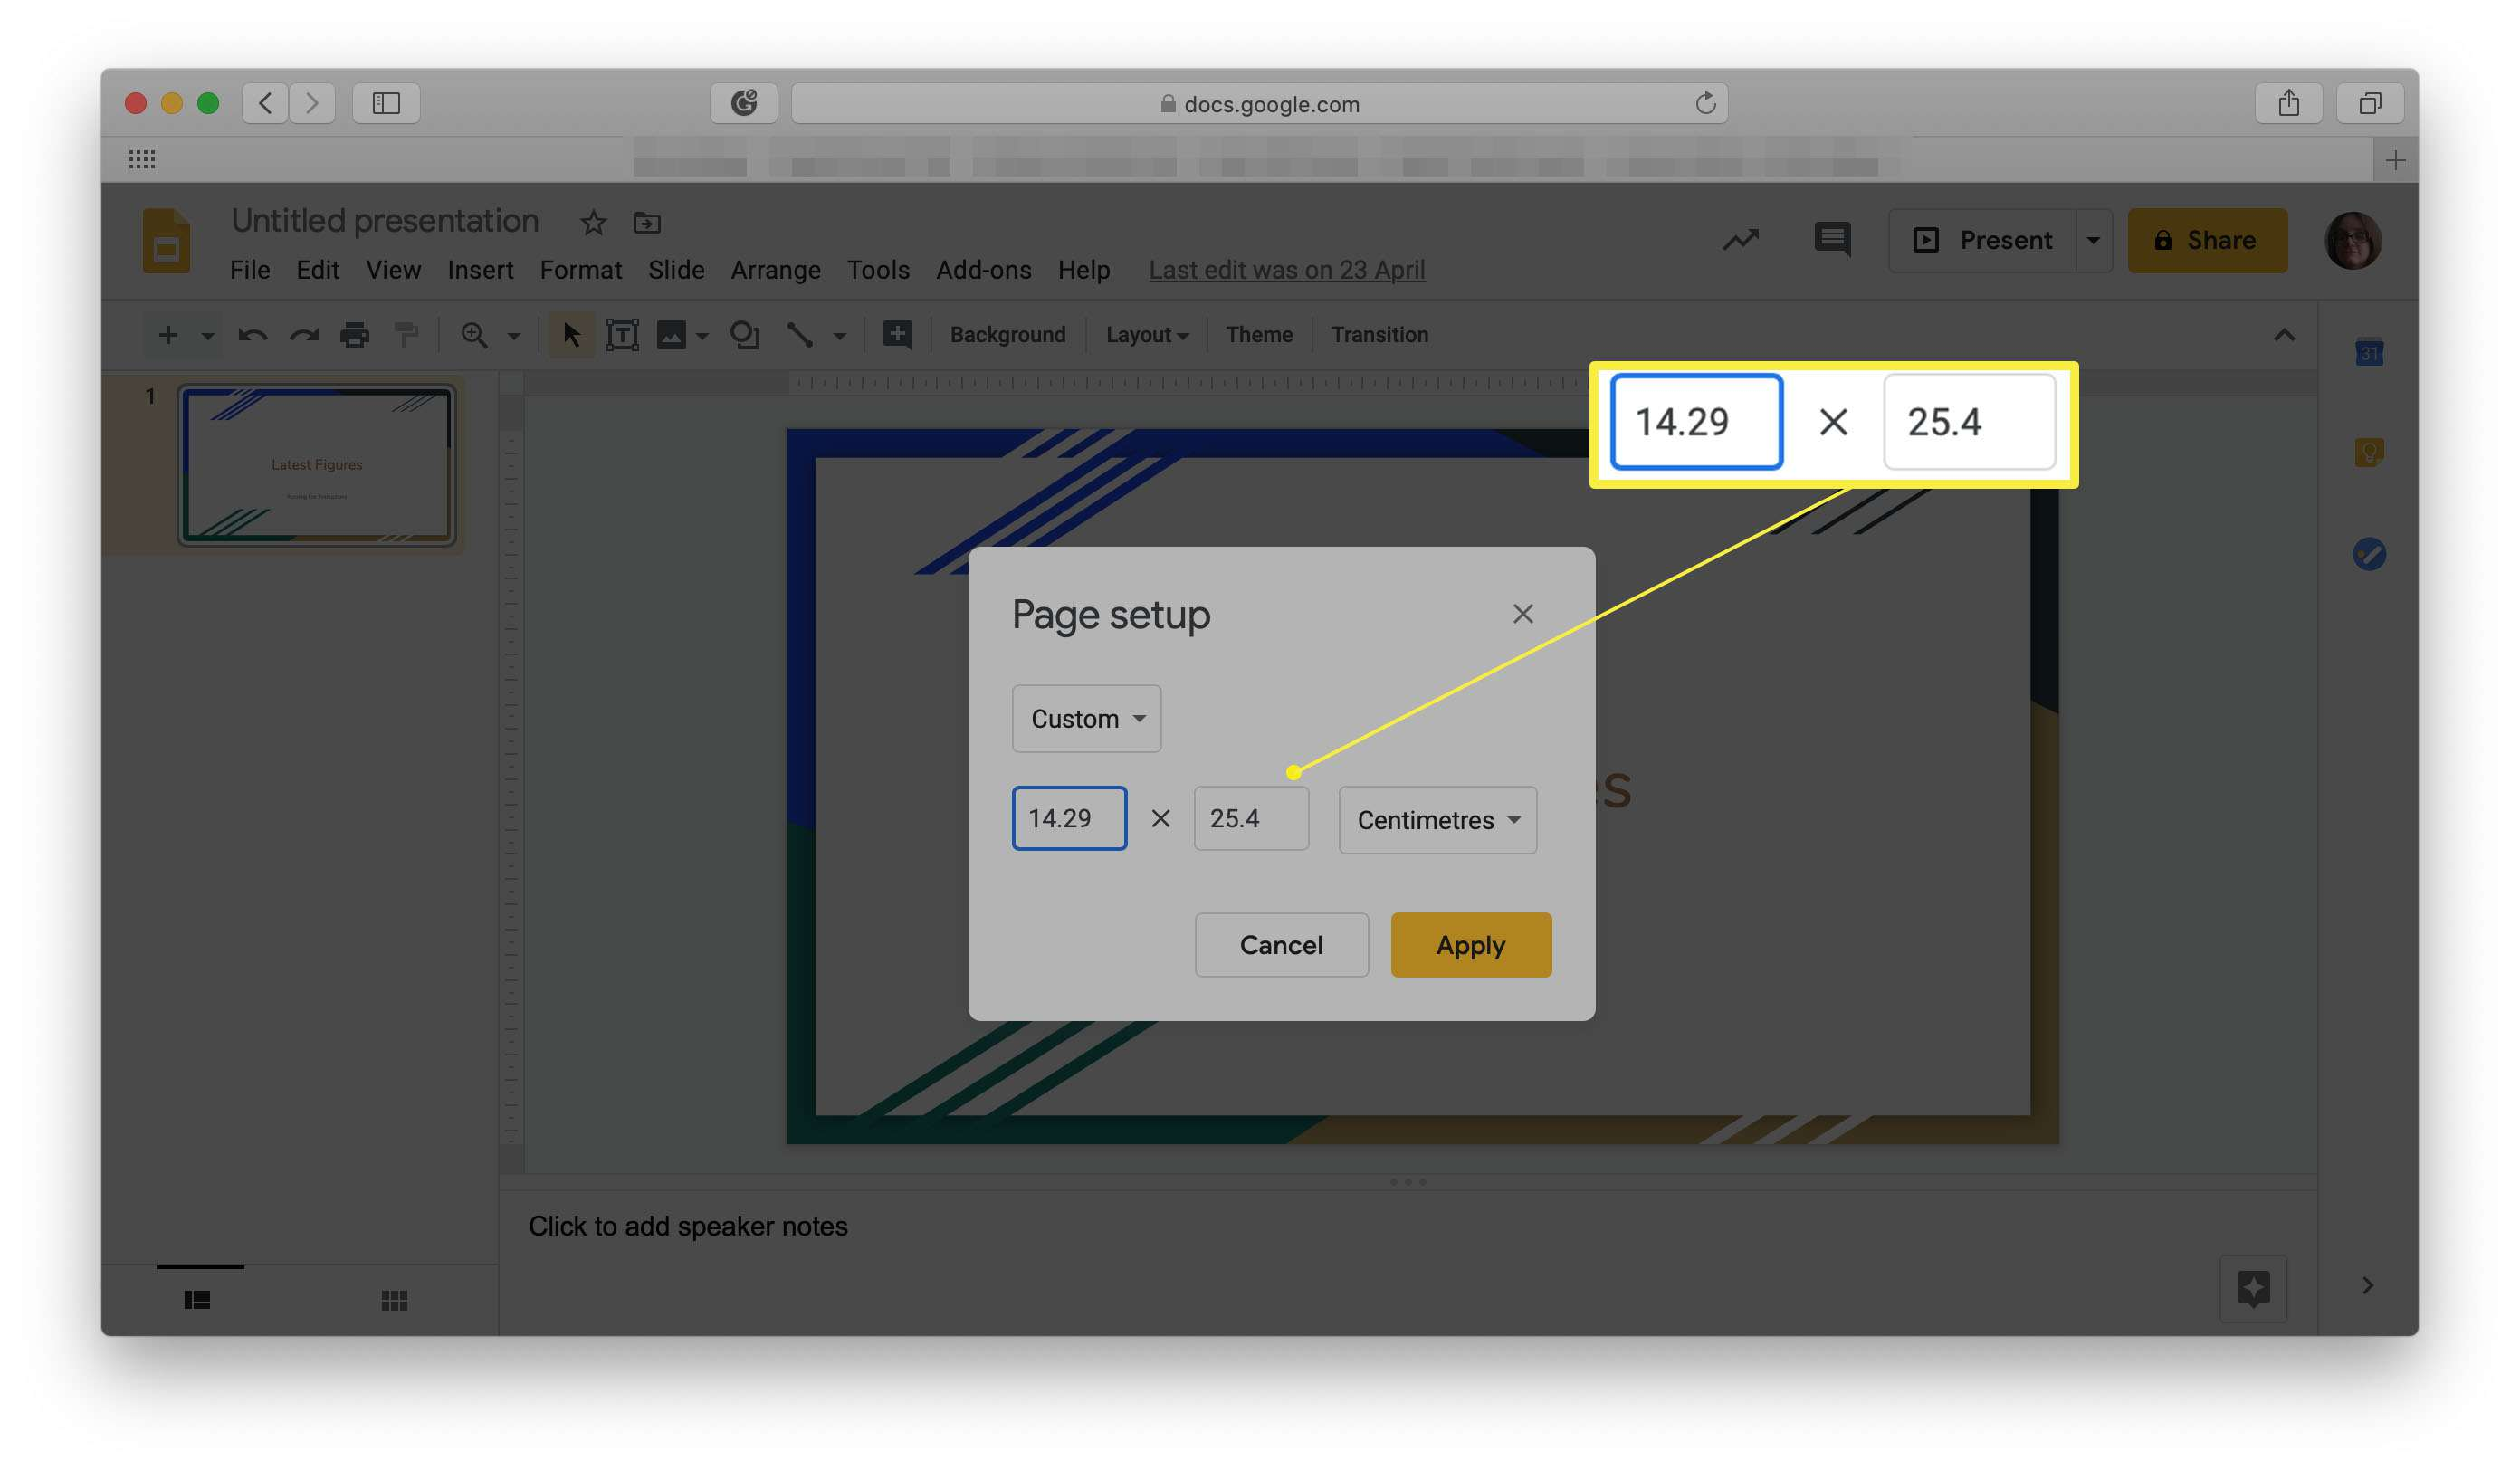 Google Slides with page setup options highlighted